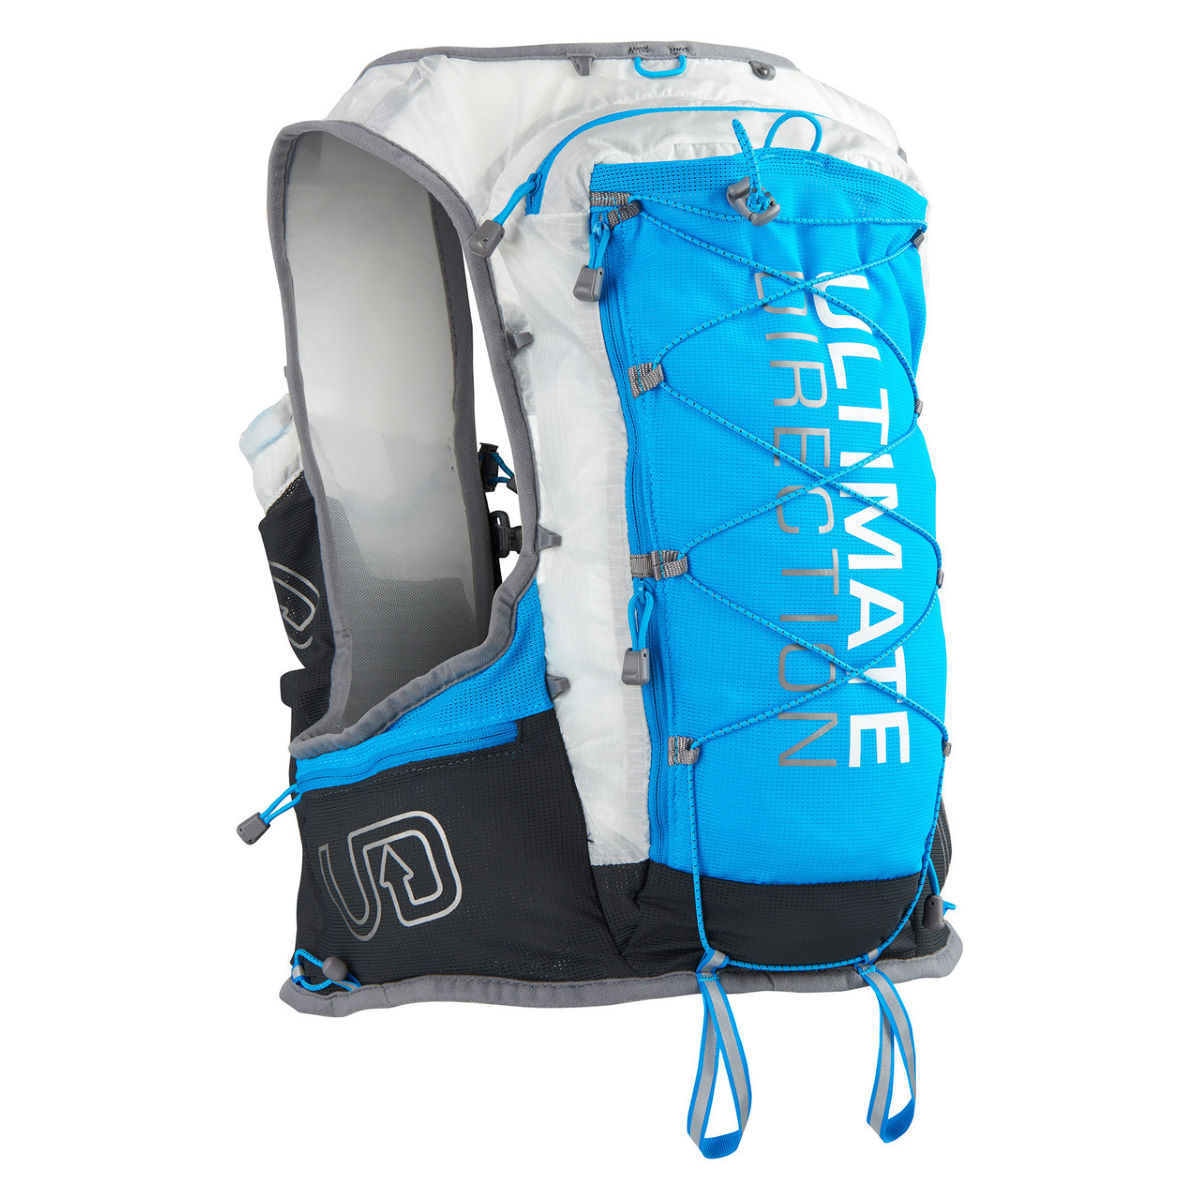 Sac à dos Ultimate Direction Anton Krupicka Mountain 3.0 - L Bleu Sacs d'hydratation